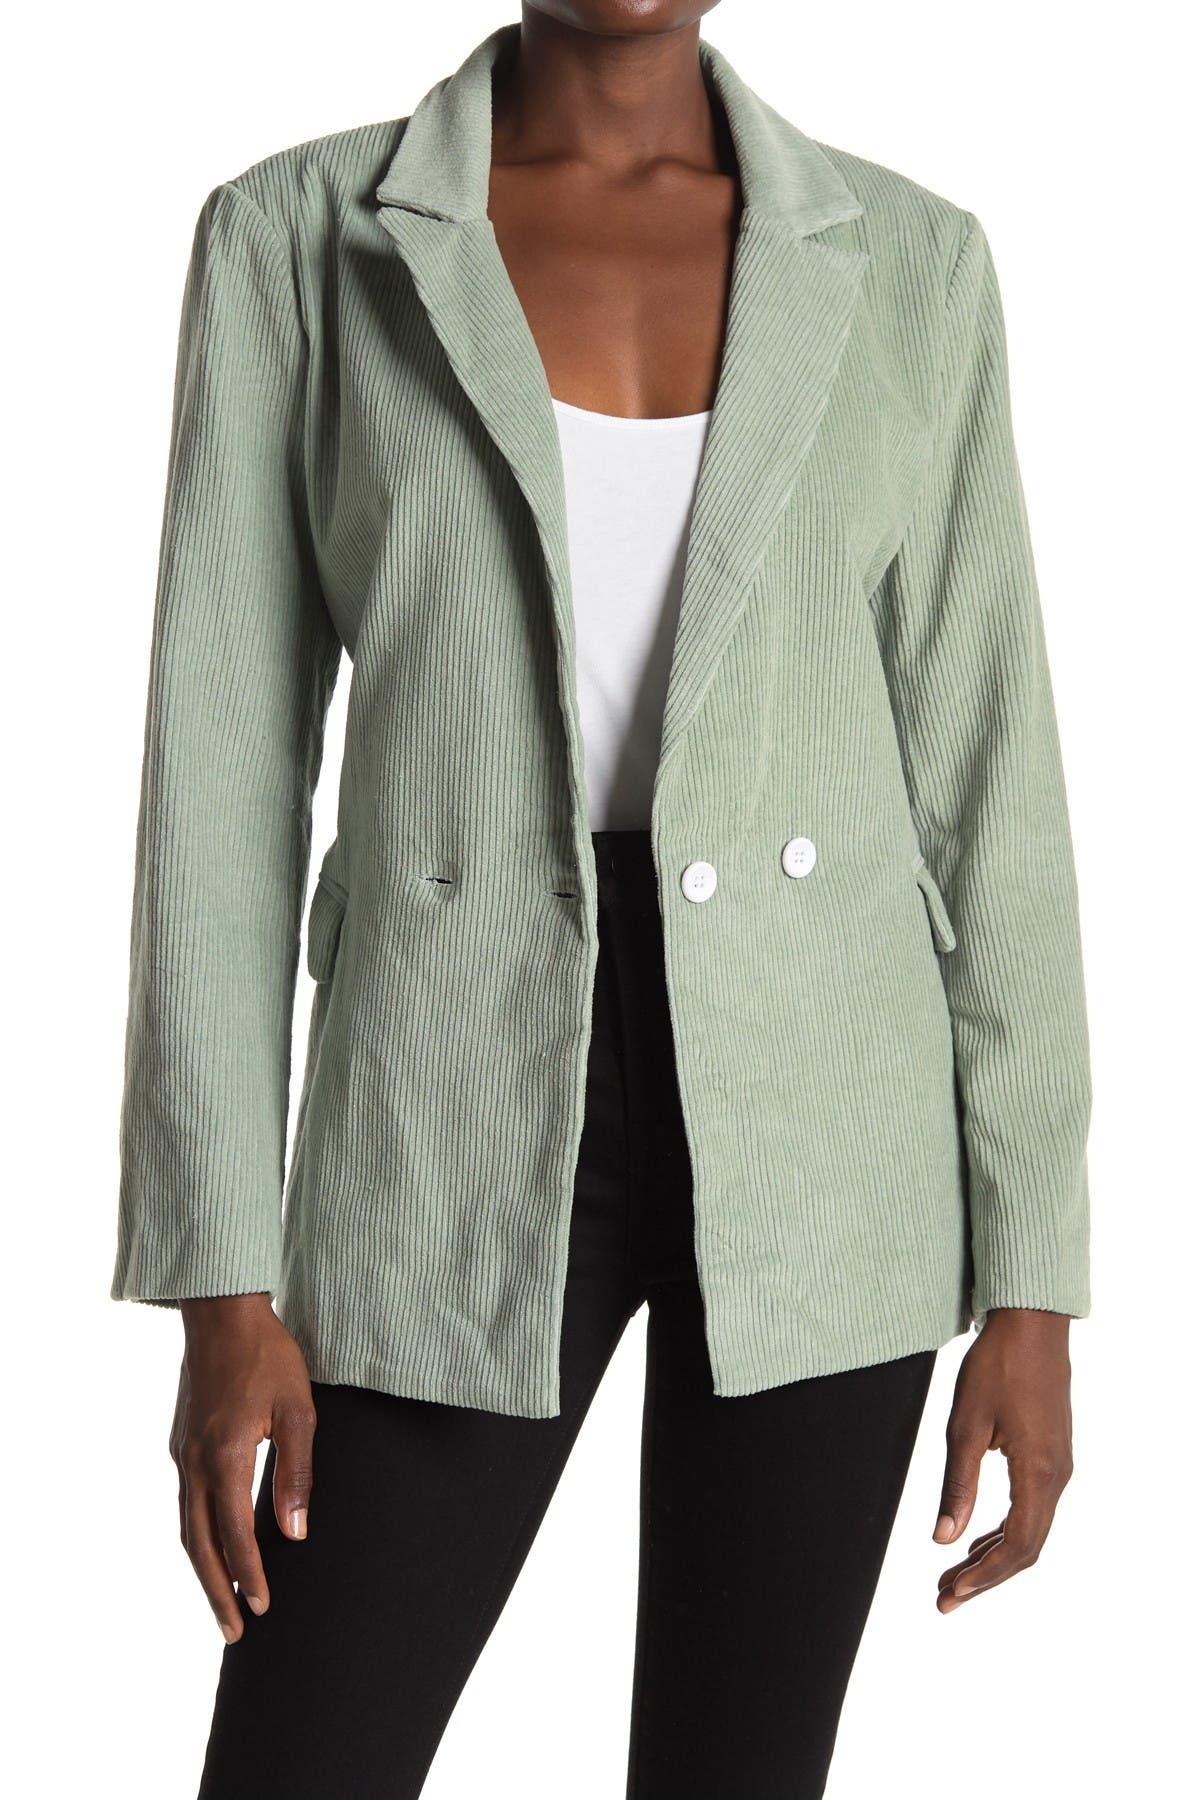 Image of CHARLIE HOLIDAY Bay Double Breasted Blazer